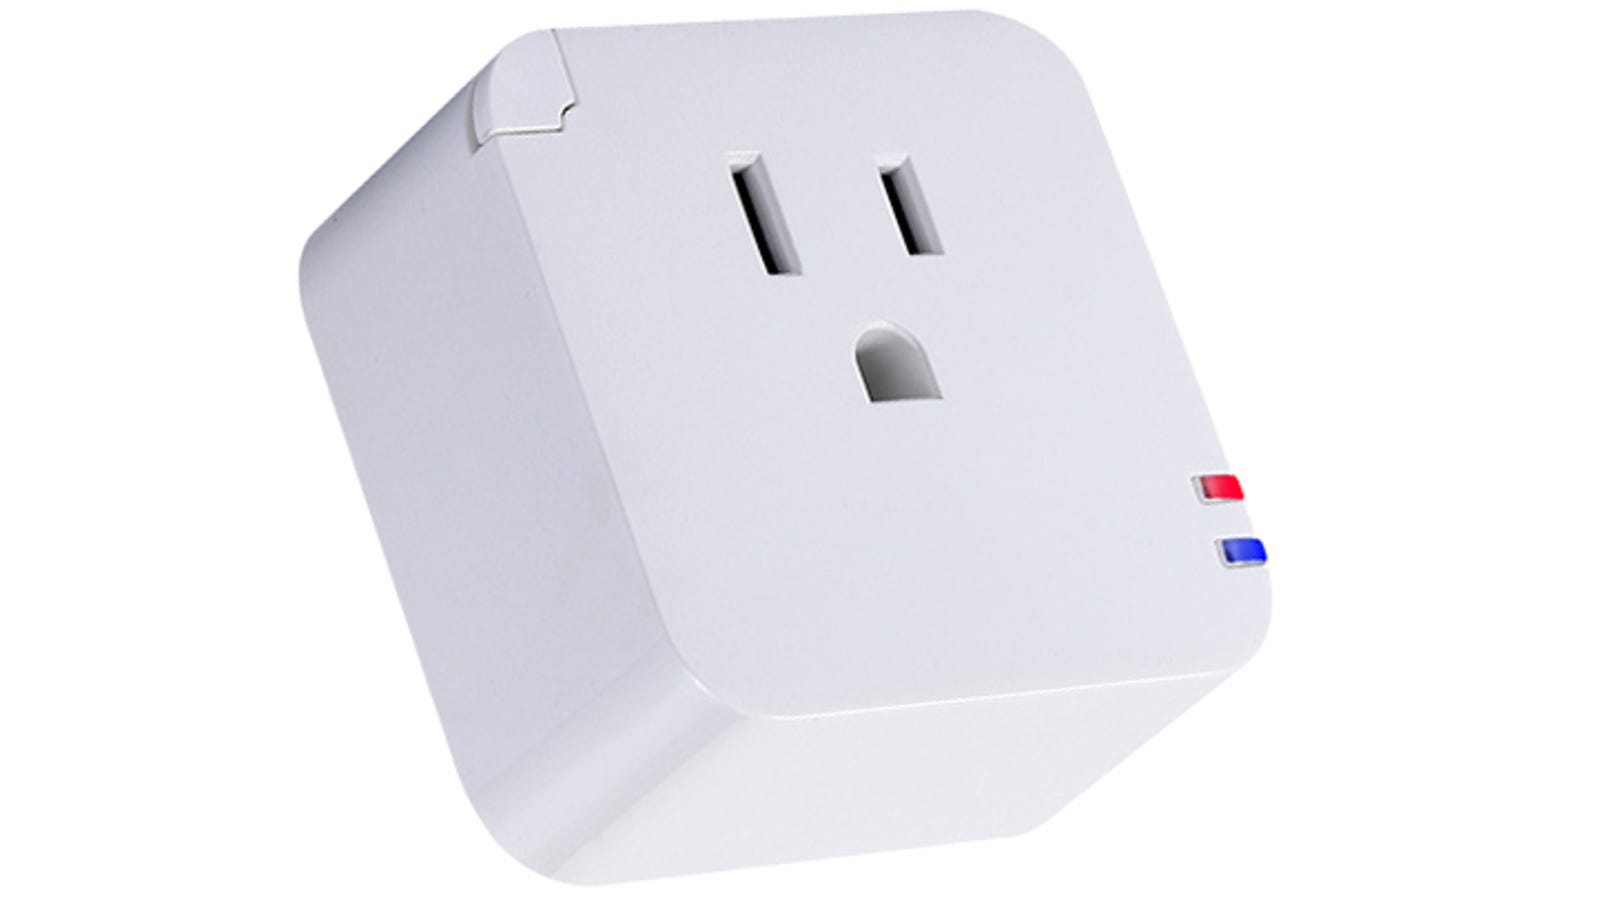 When Your Internet Goes Out, This Smart Plug Resets Your Router